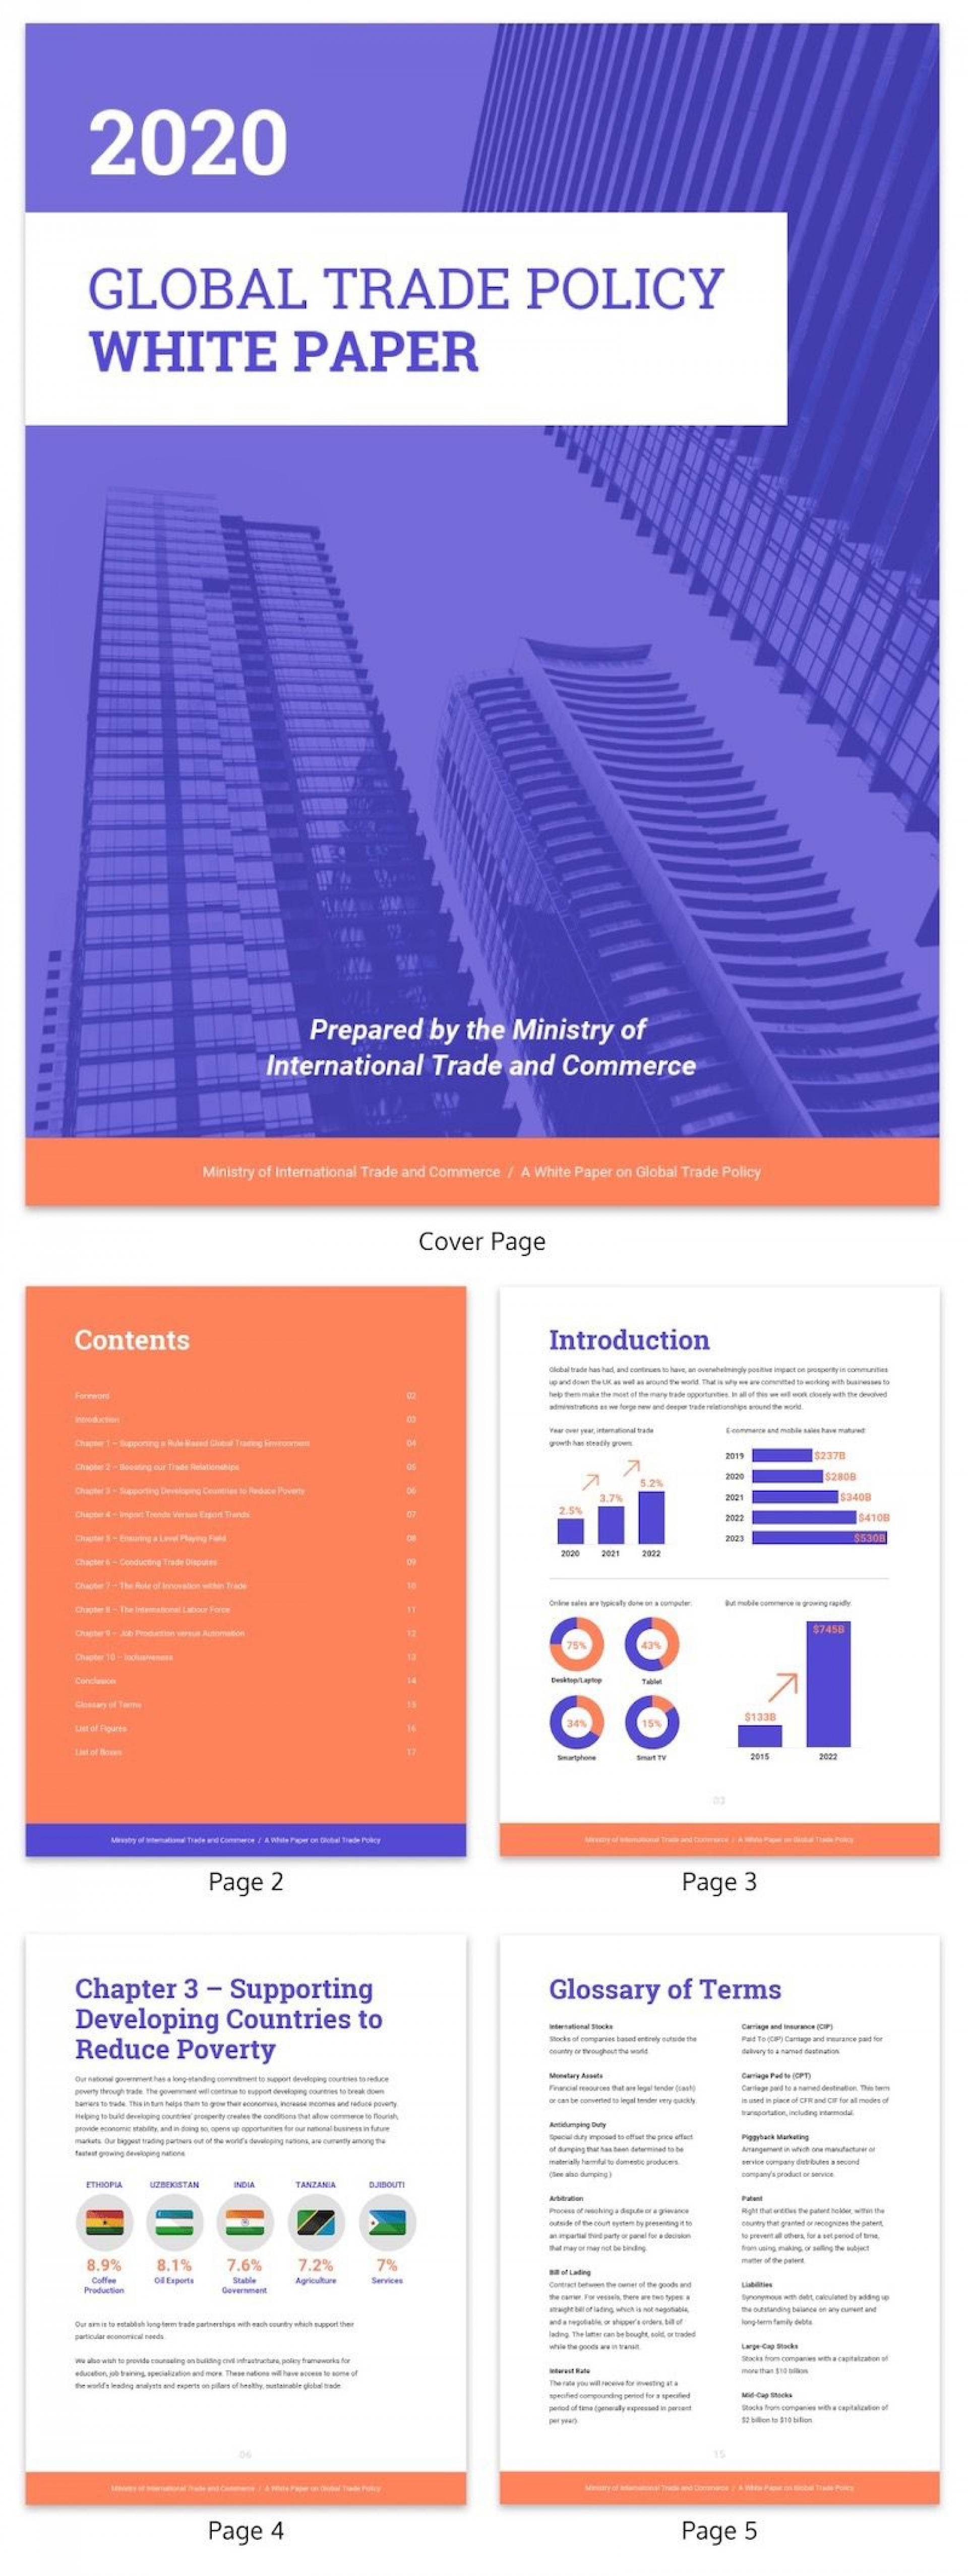 005 Unusual Technical White Paper Template Sample  Word Doc Free Download 20131920